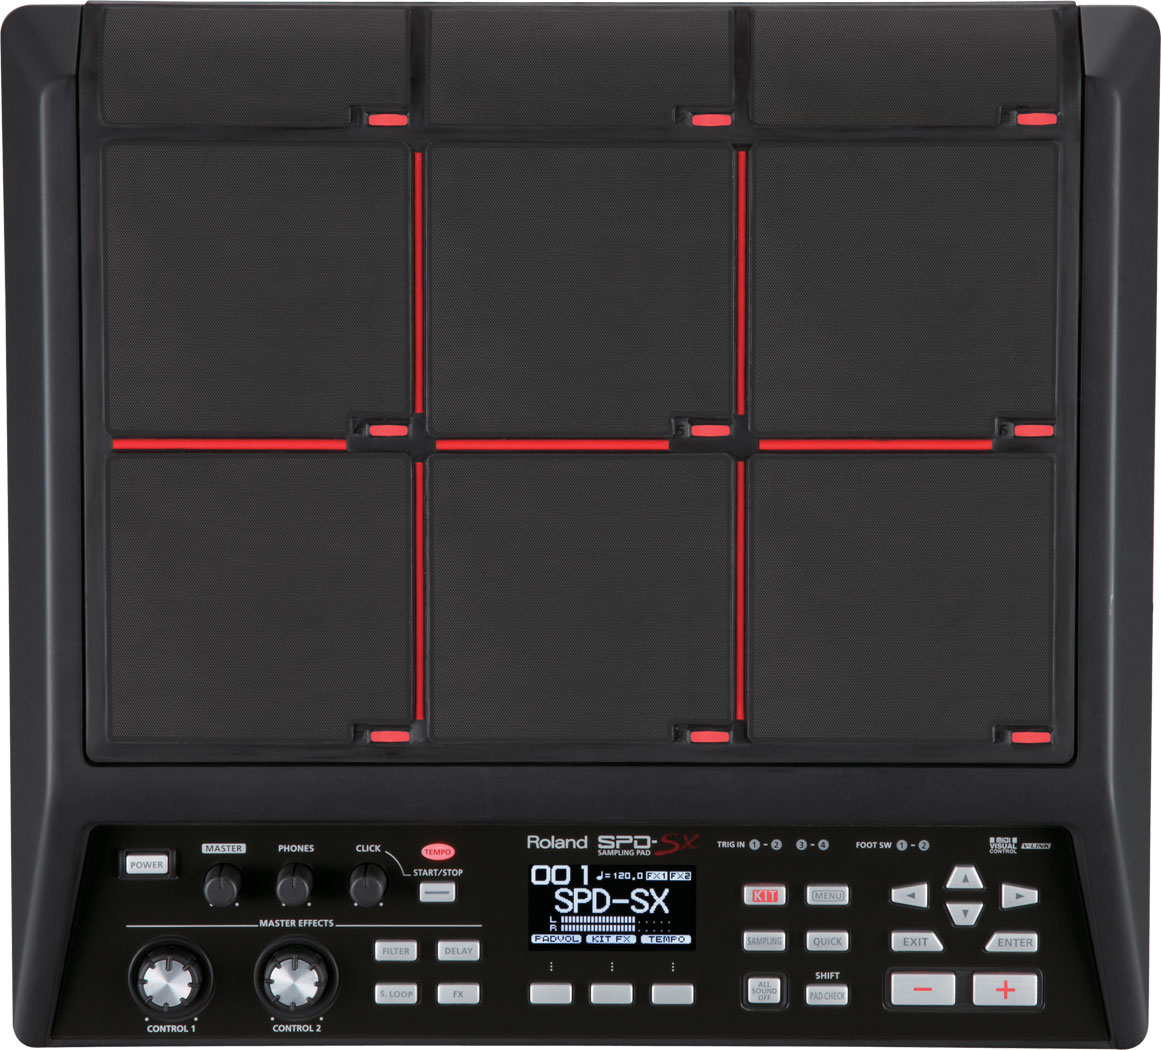 Roland spd-s spds spd complete service manual download manuals &a.